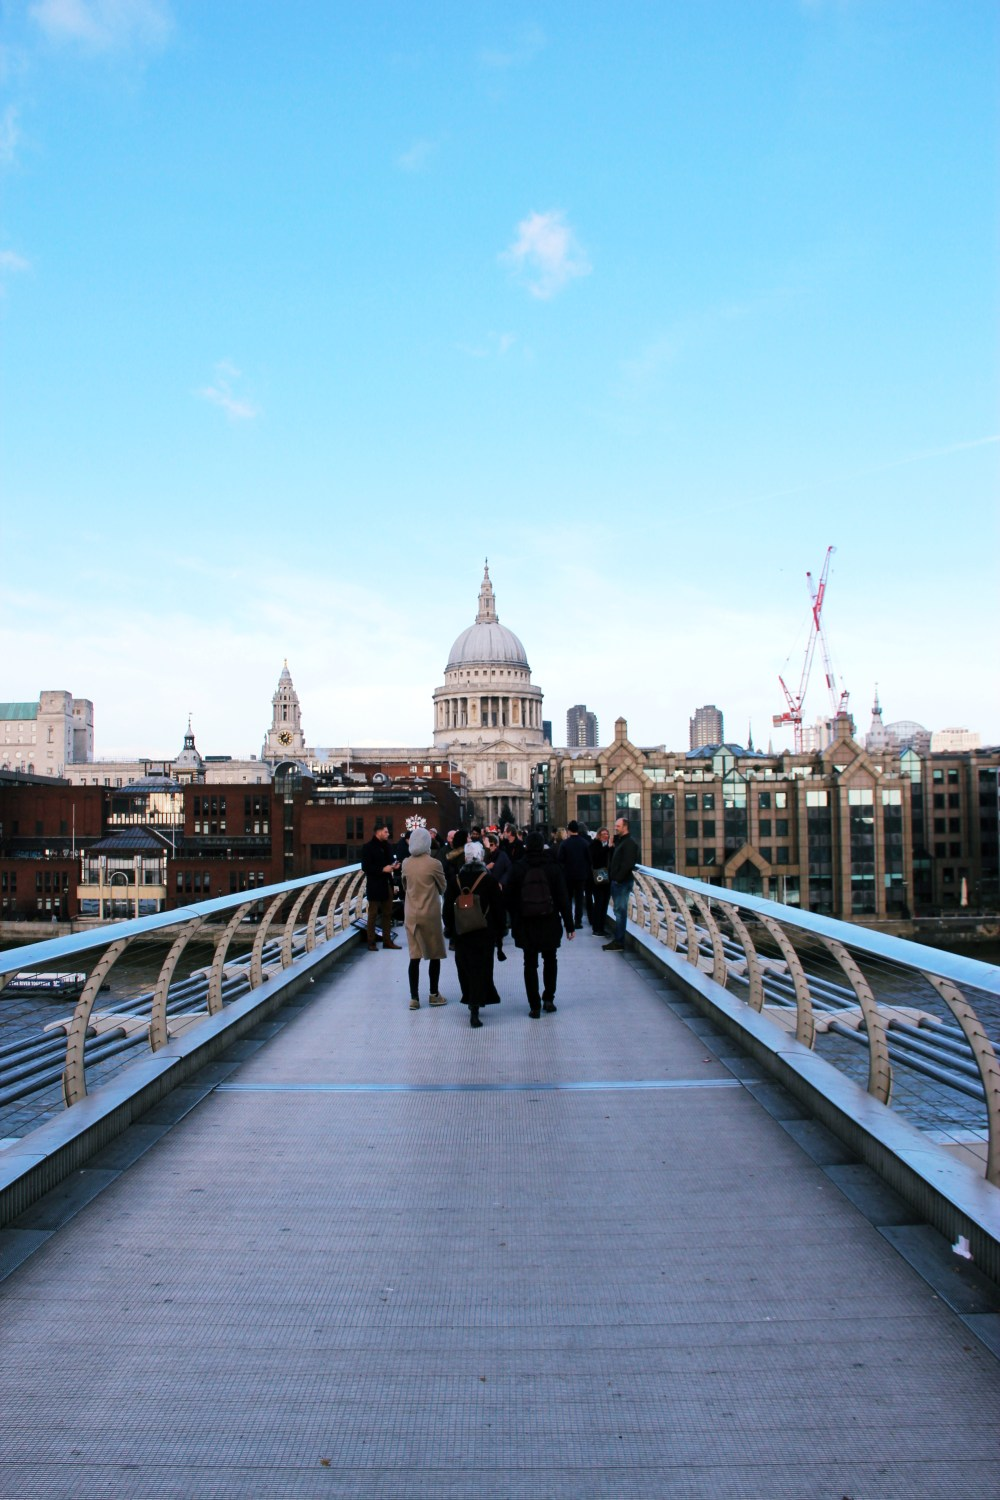 11 Dec 2016: Millennium Bridge | London, England